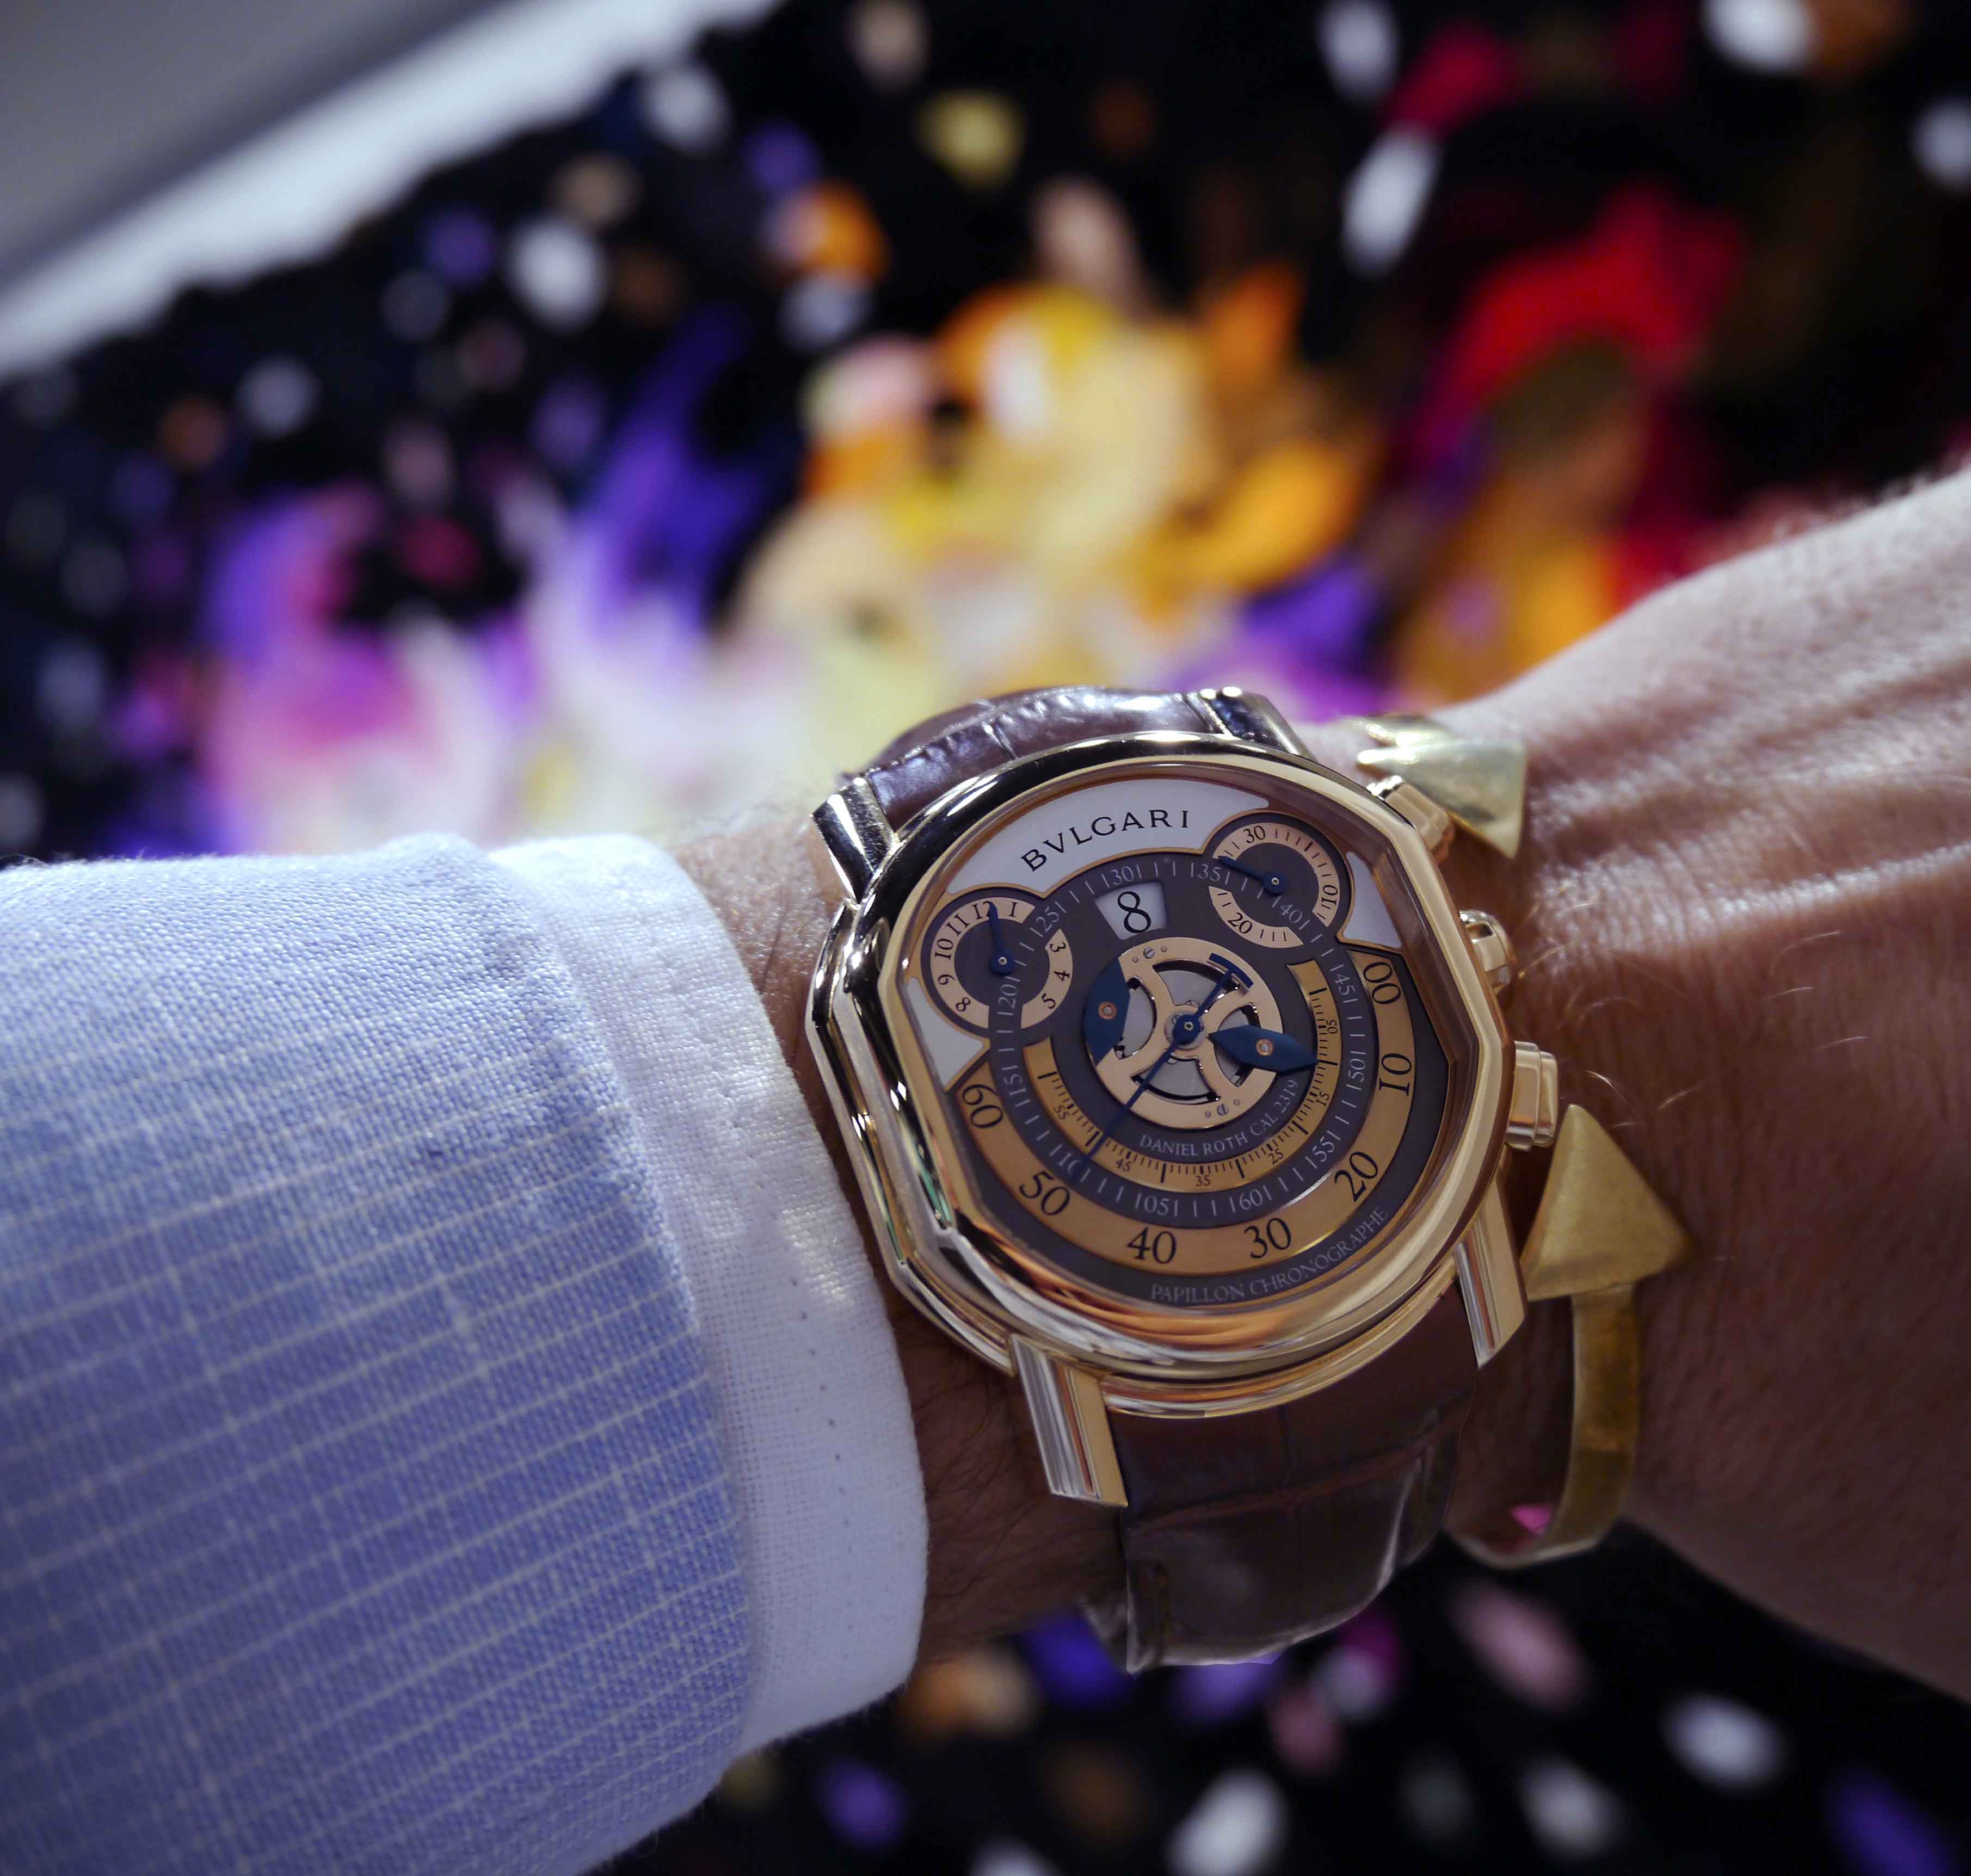 Part 3 – Seven Days, Seven Watches, One Pagani – Art Basel Miami